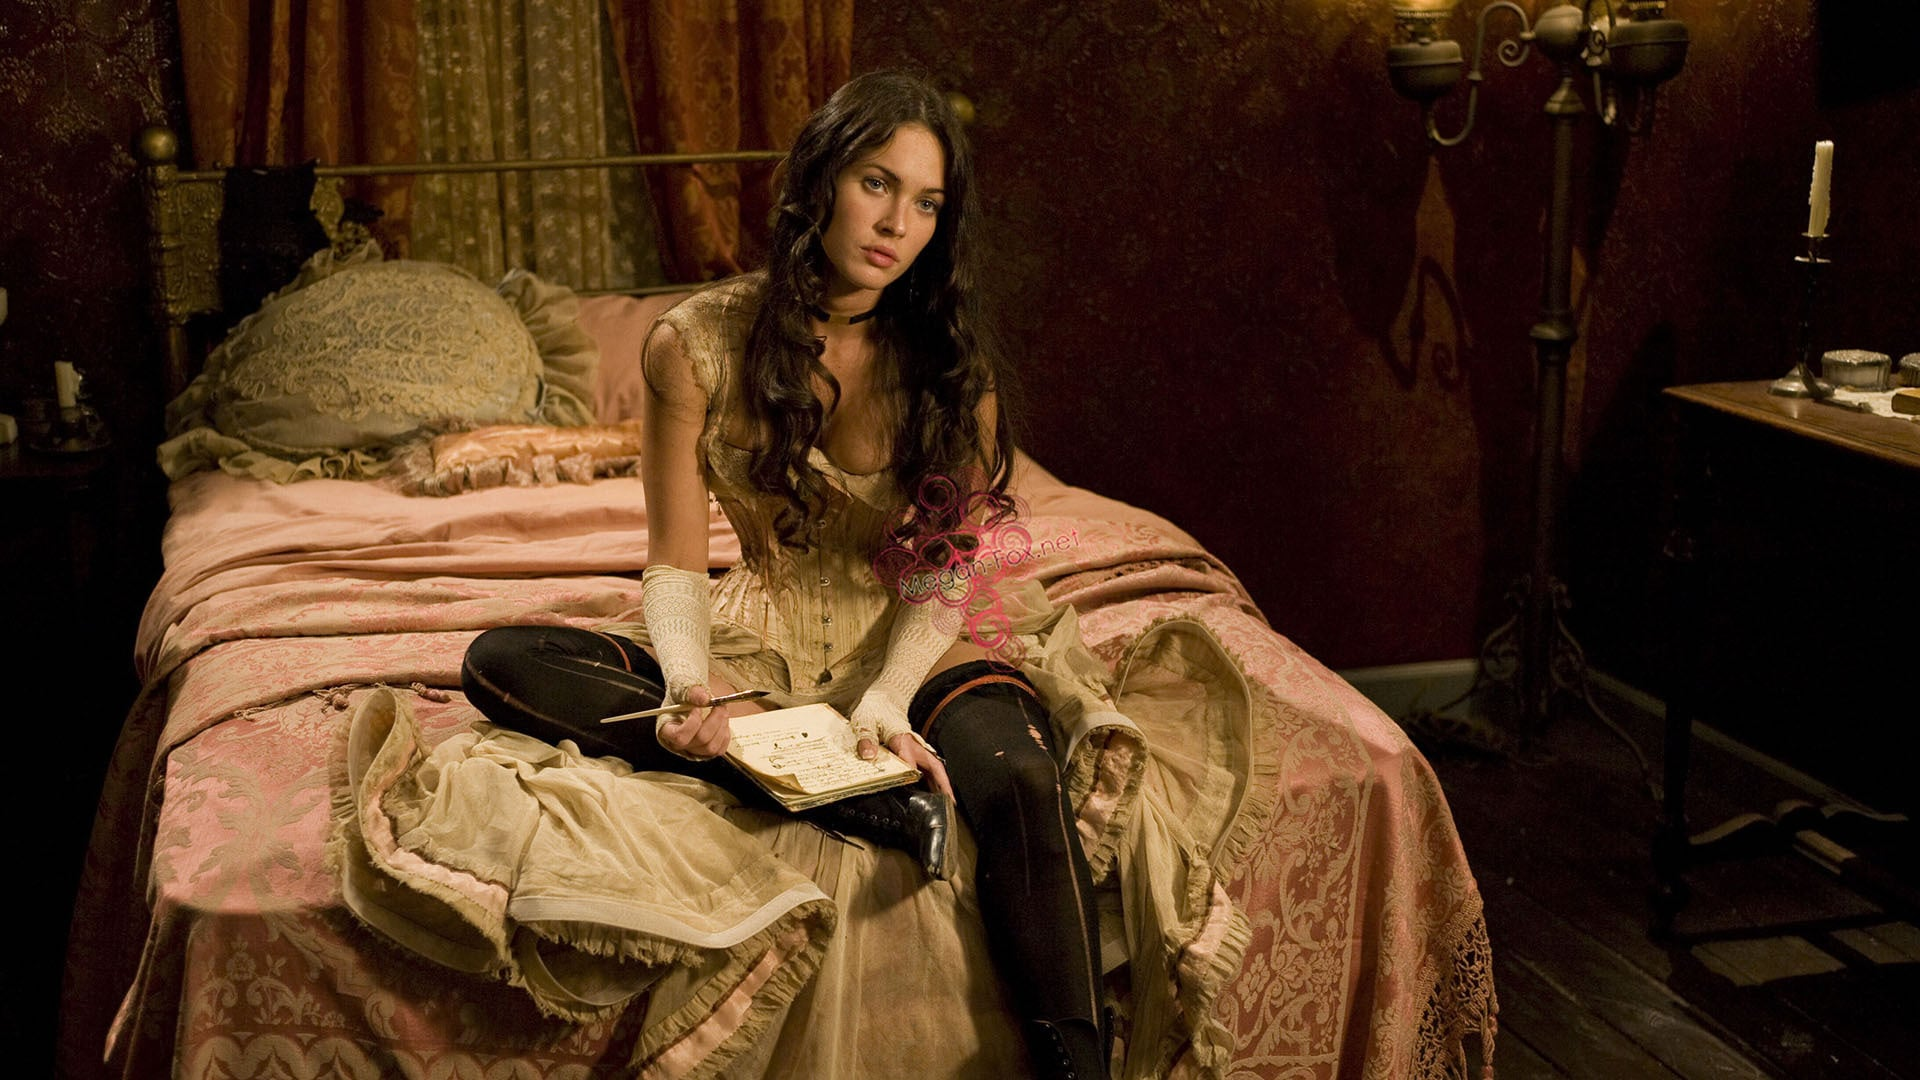 Megan Fox as Lilah in Jonah Hex (2010)